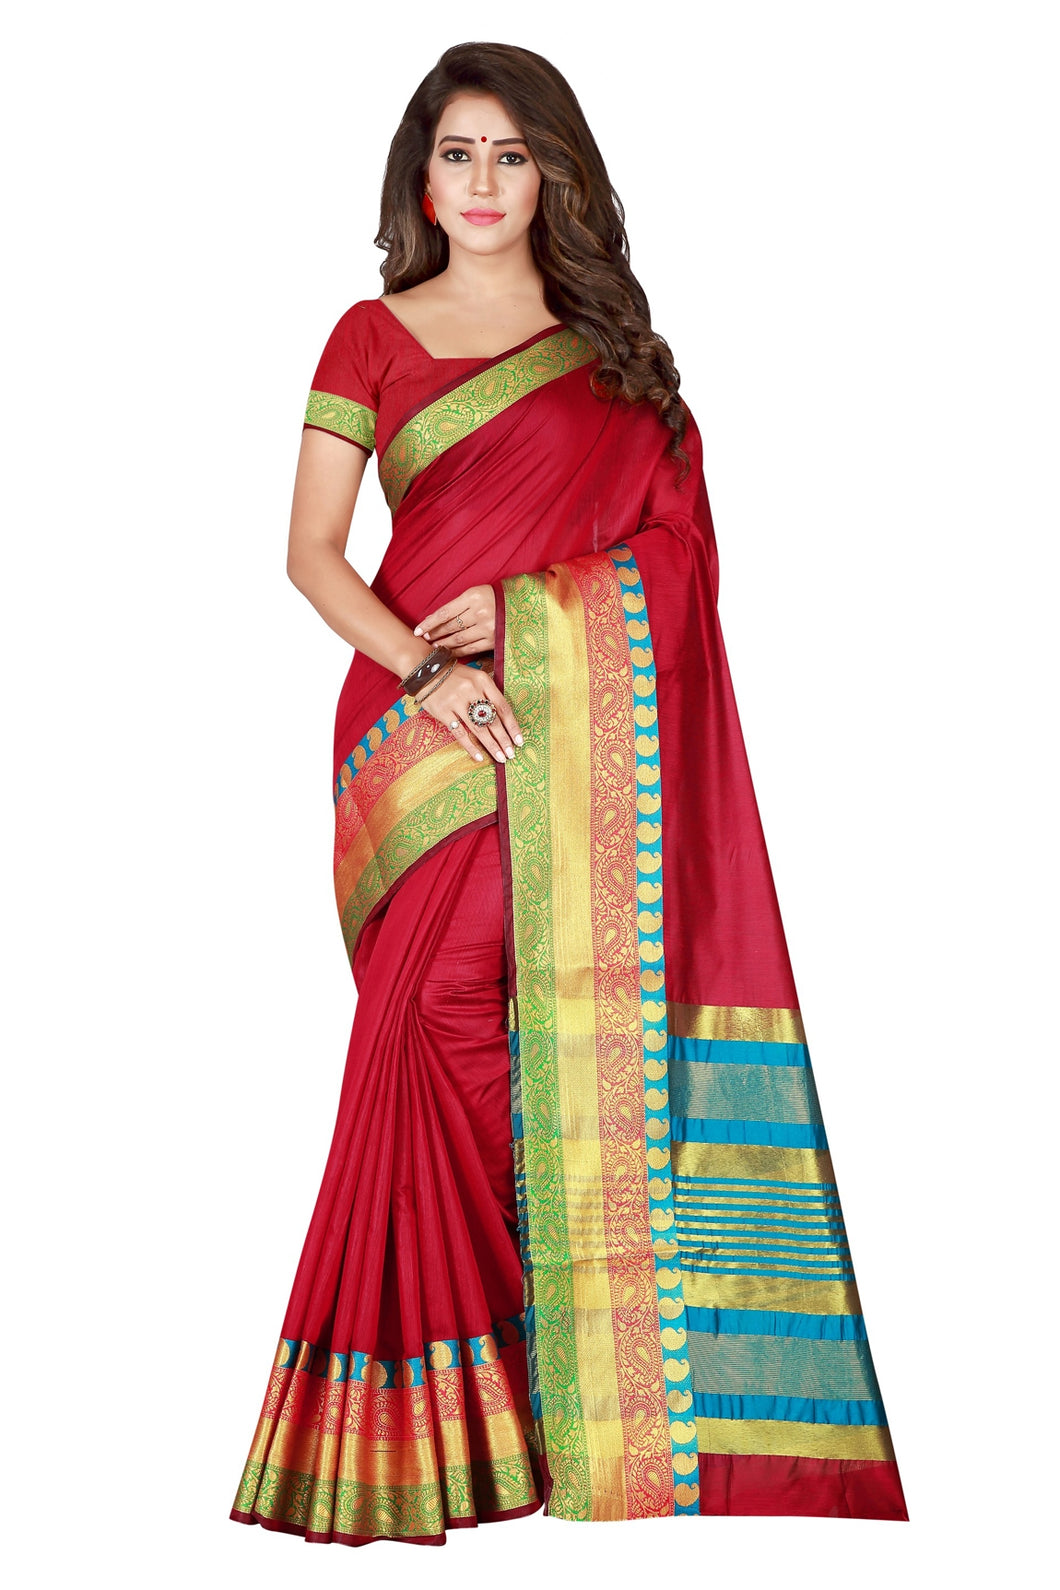 Bhelpuri Maroon Cotton Blend Woven Saree with Blouse Piece